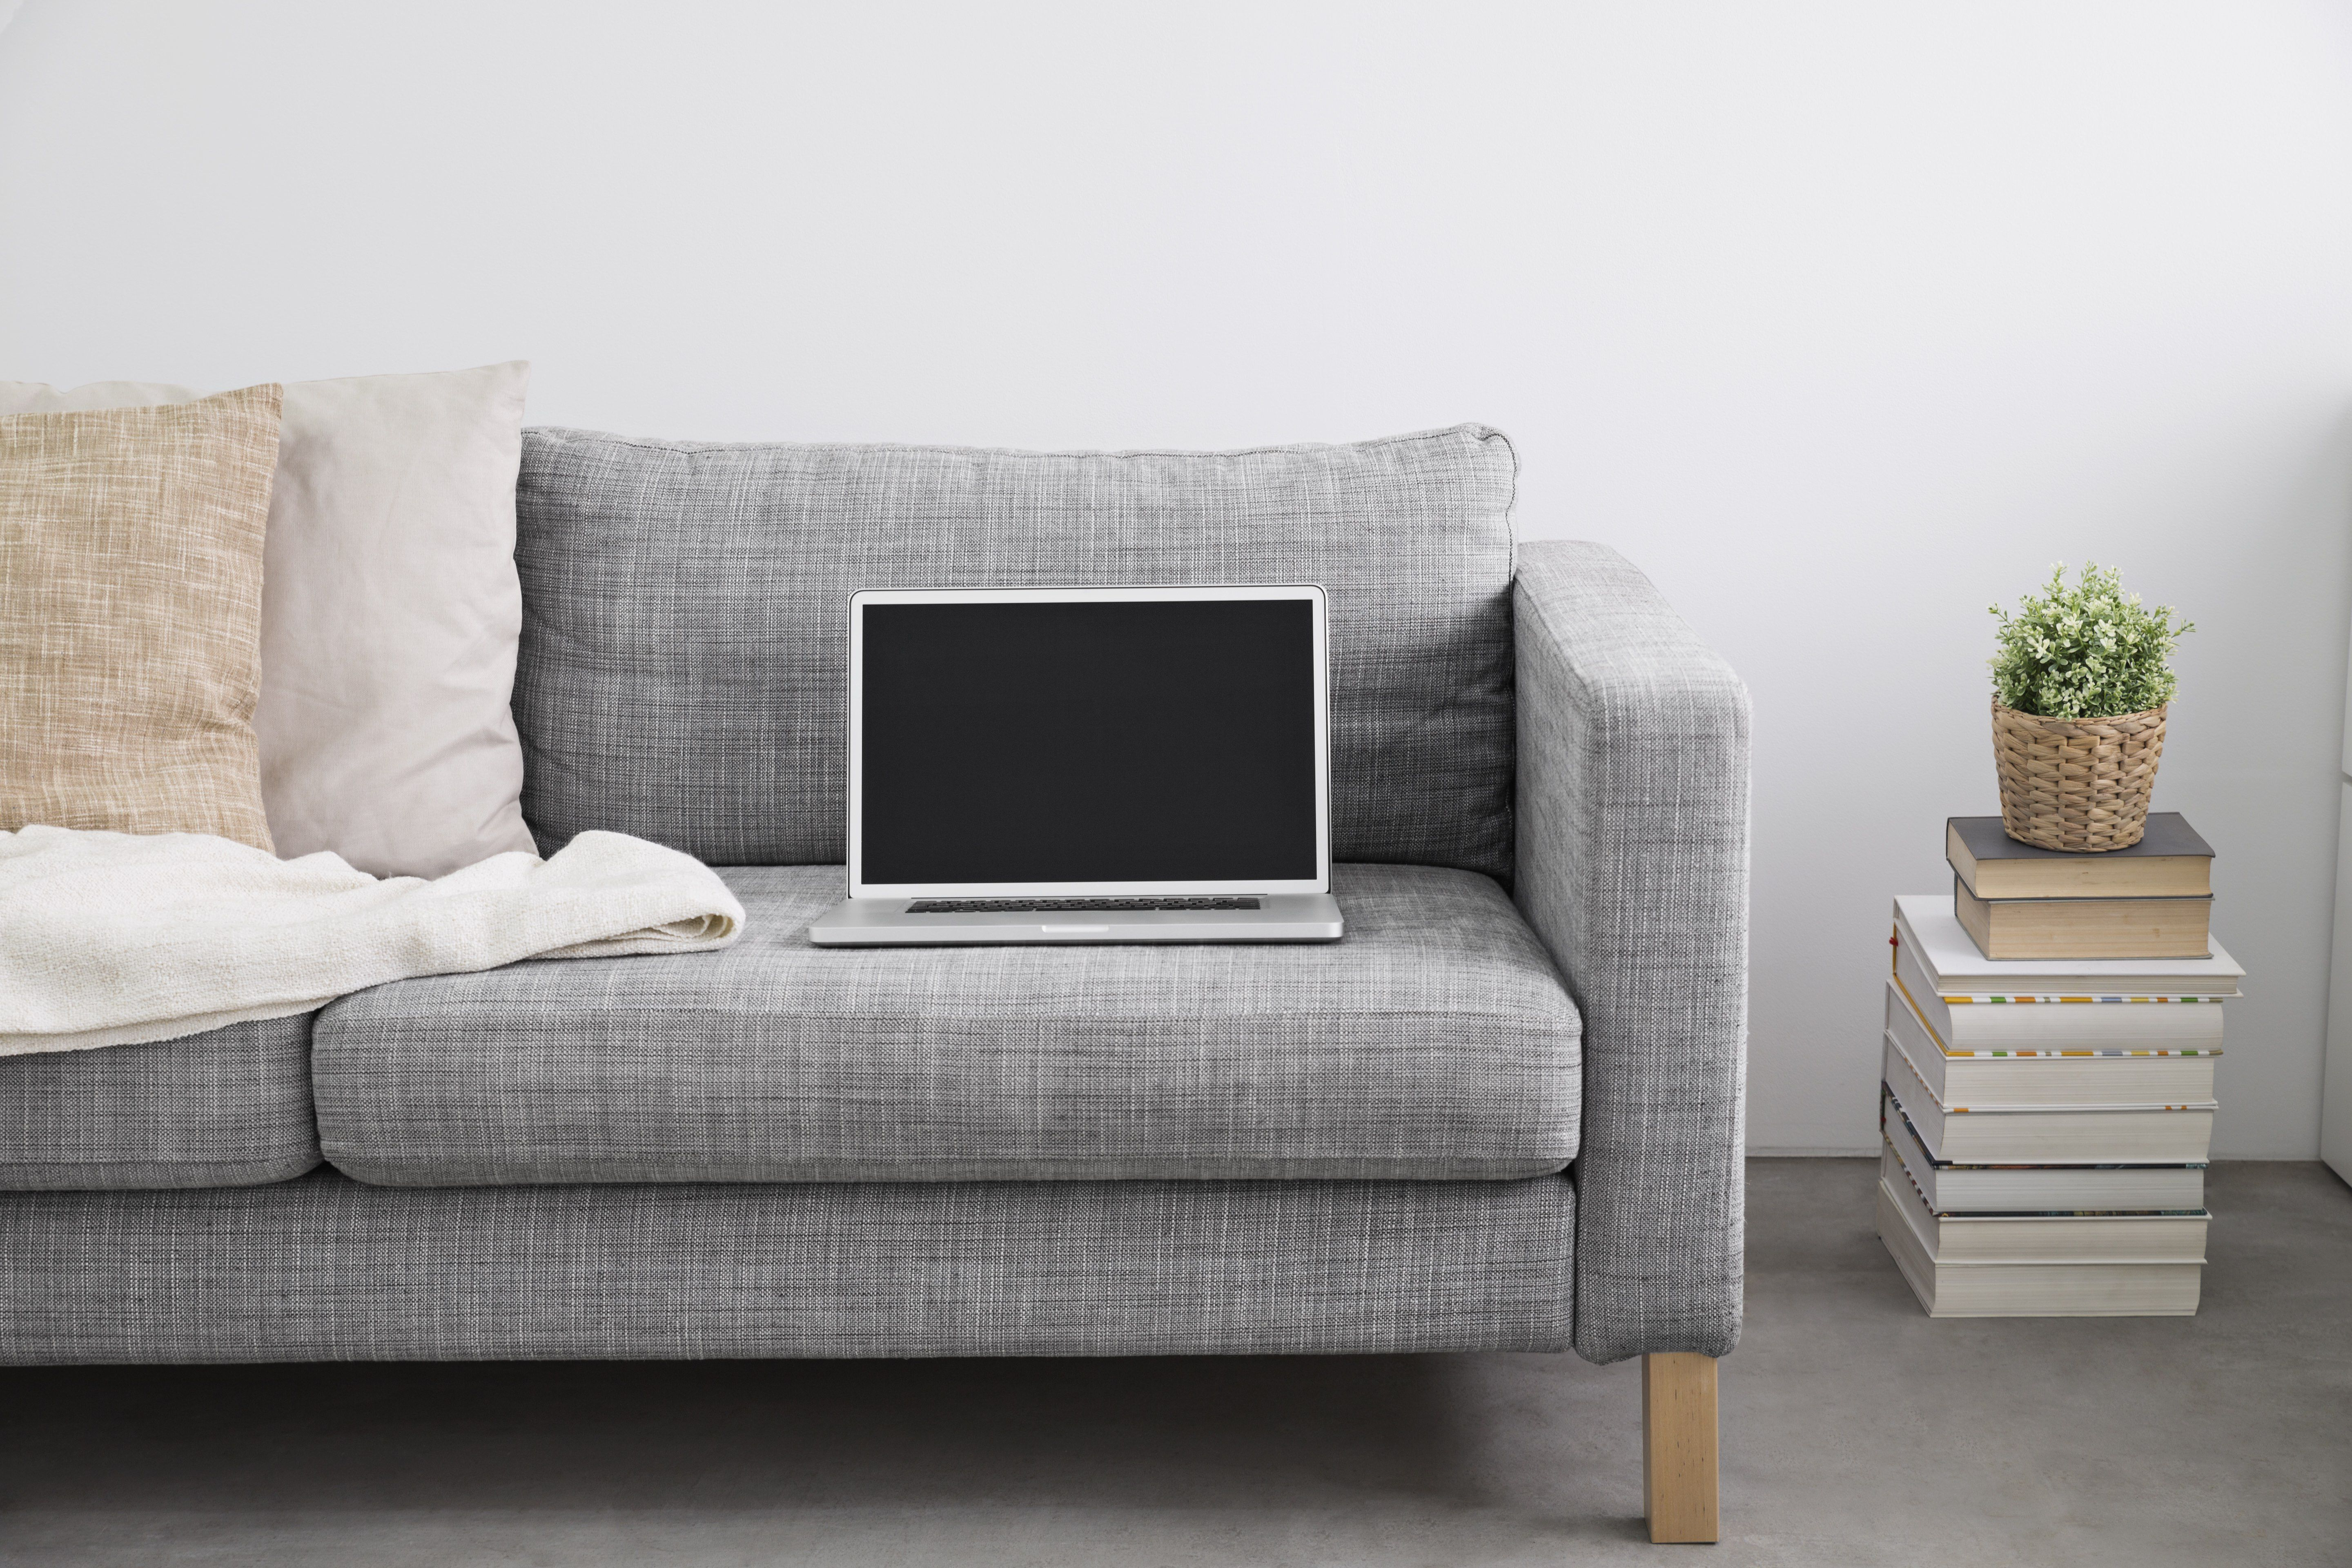 Sofa Online Q5df How to A sofa Online Ing Furniture Online